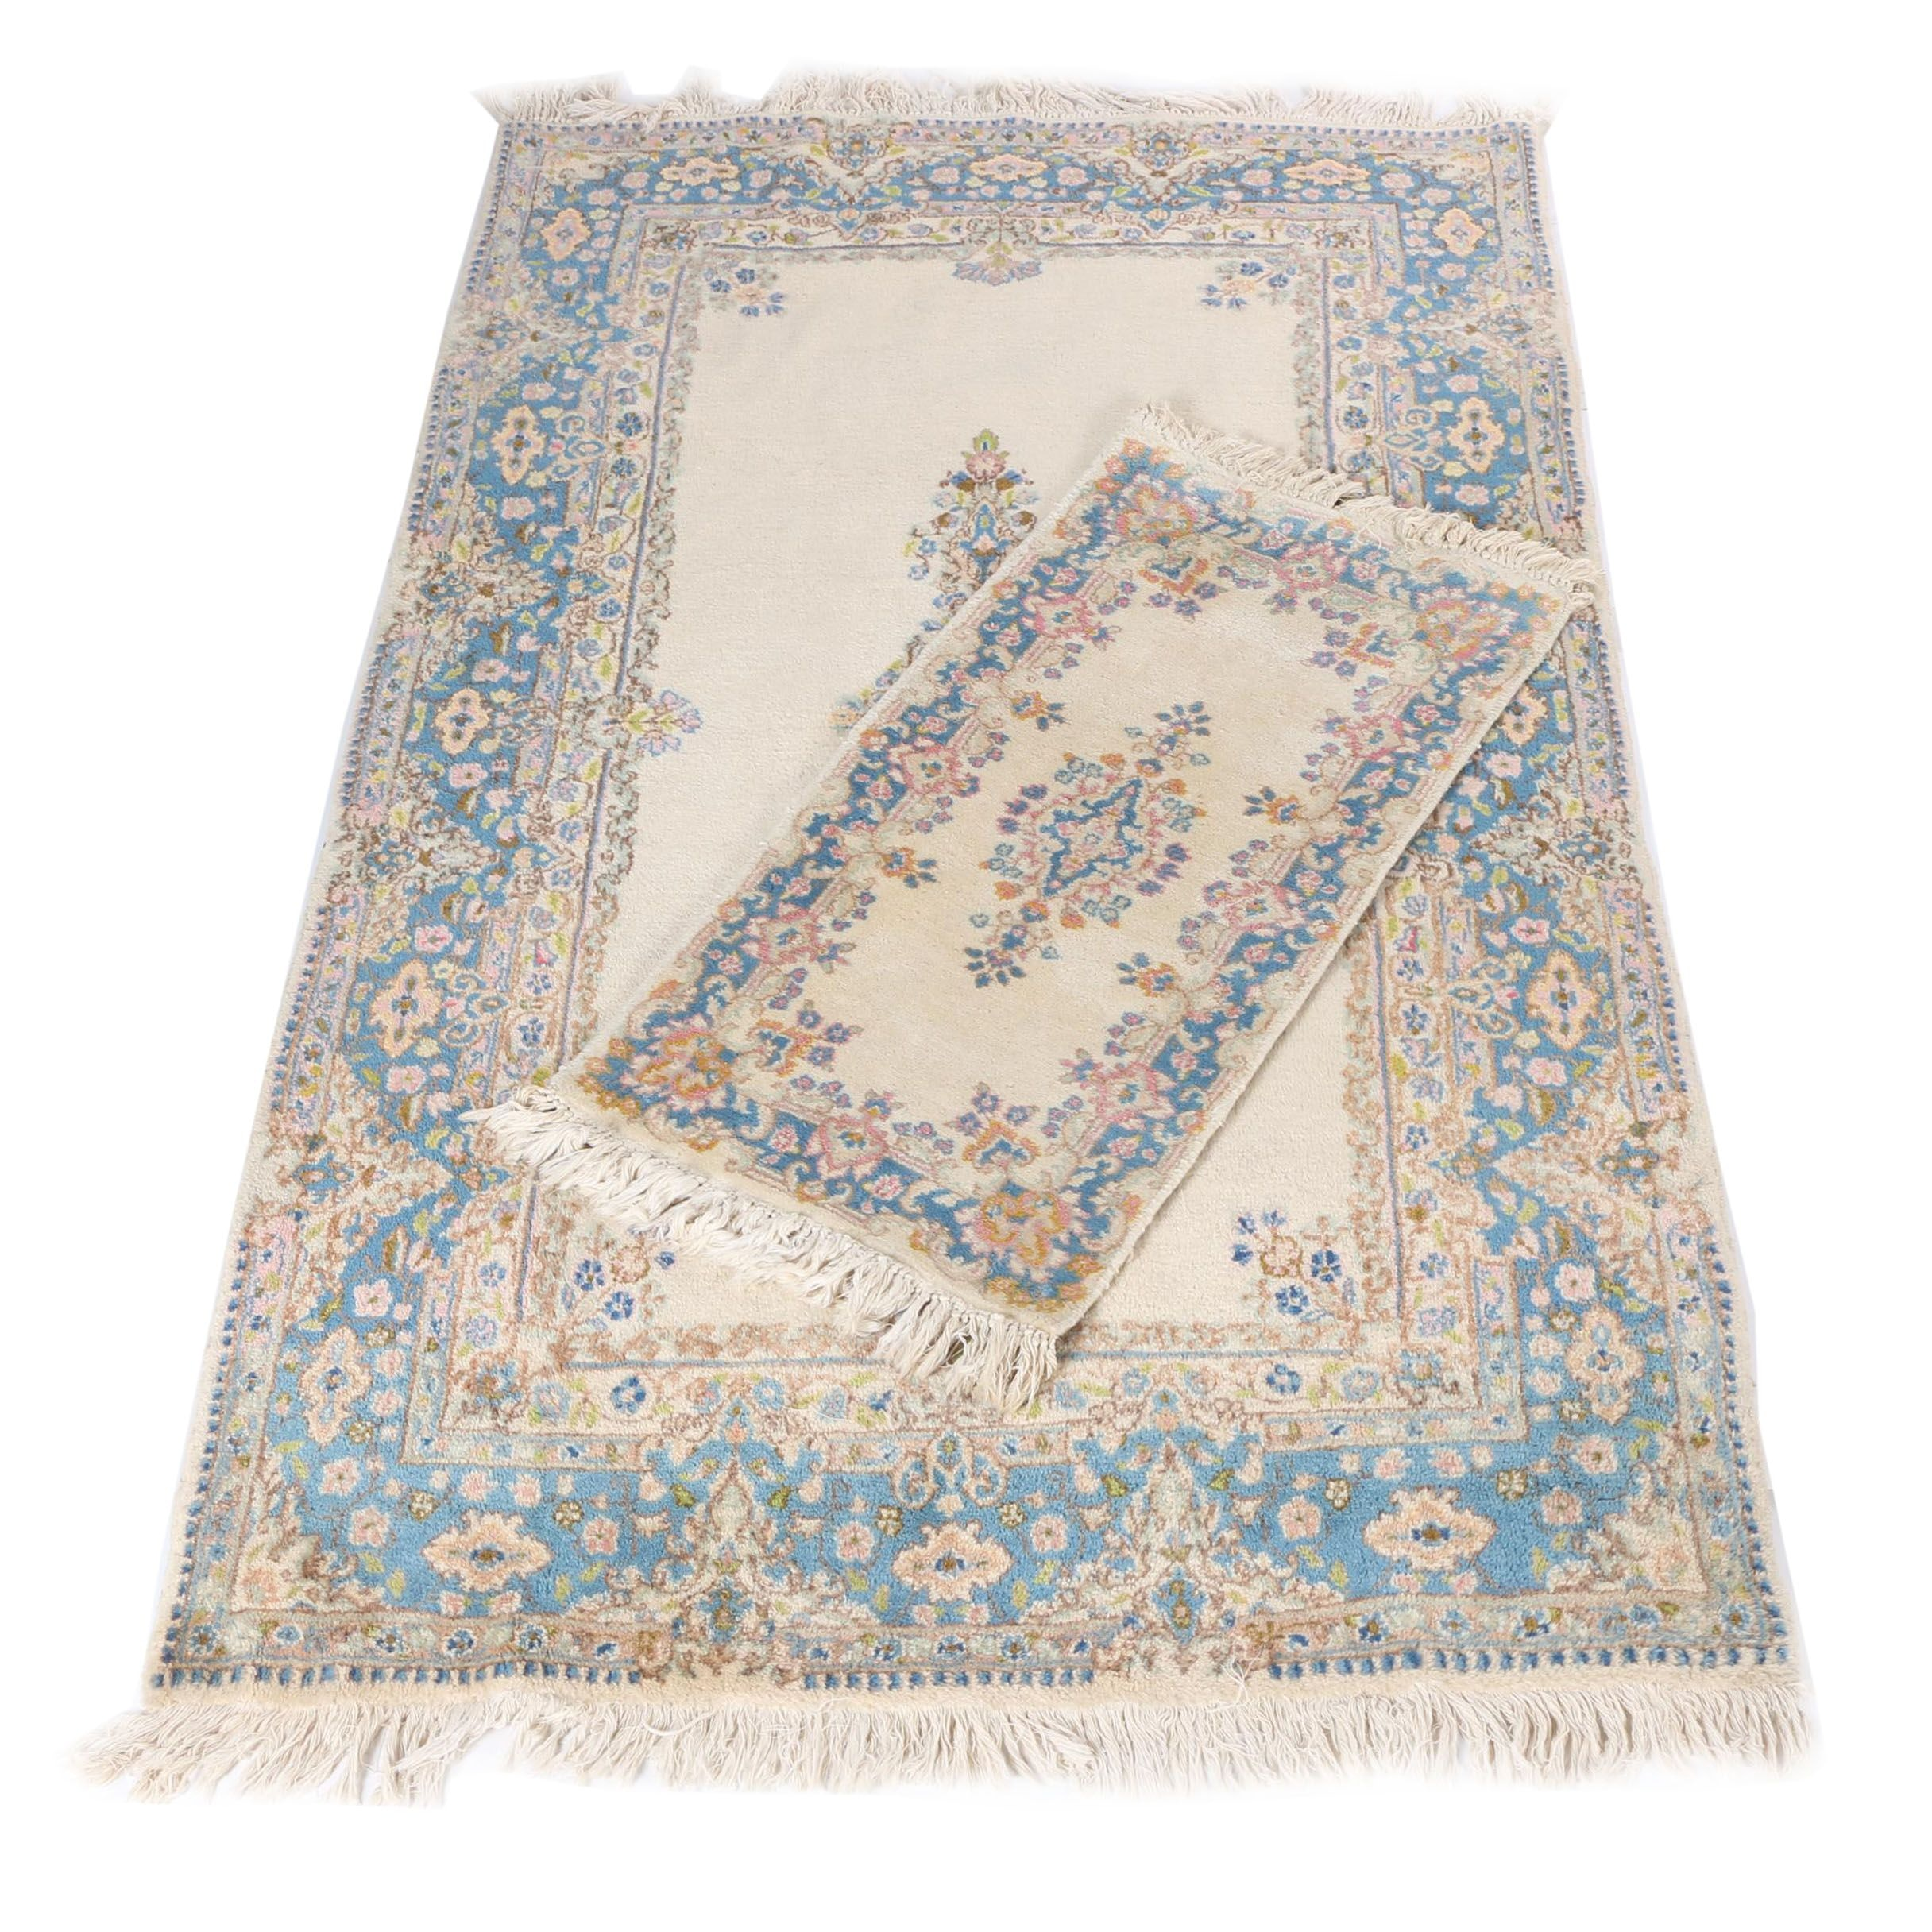 Hand-Knotted Persian Kerman Wool Rugs